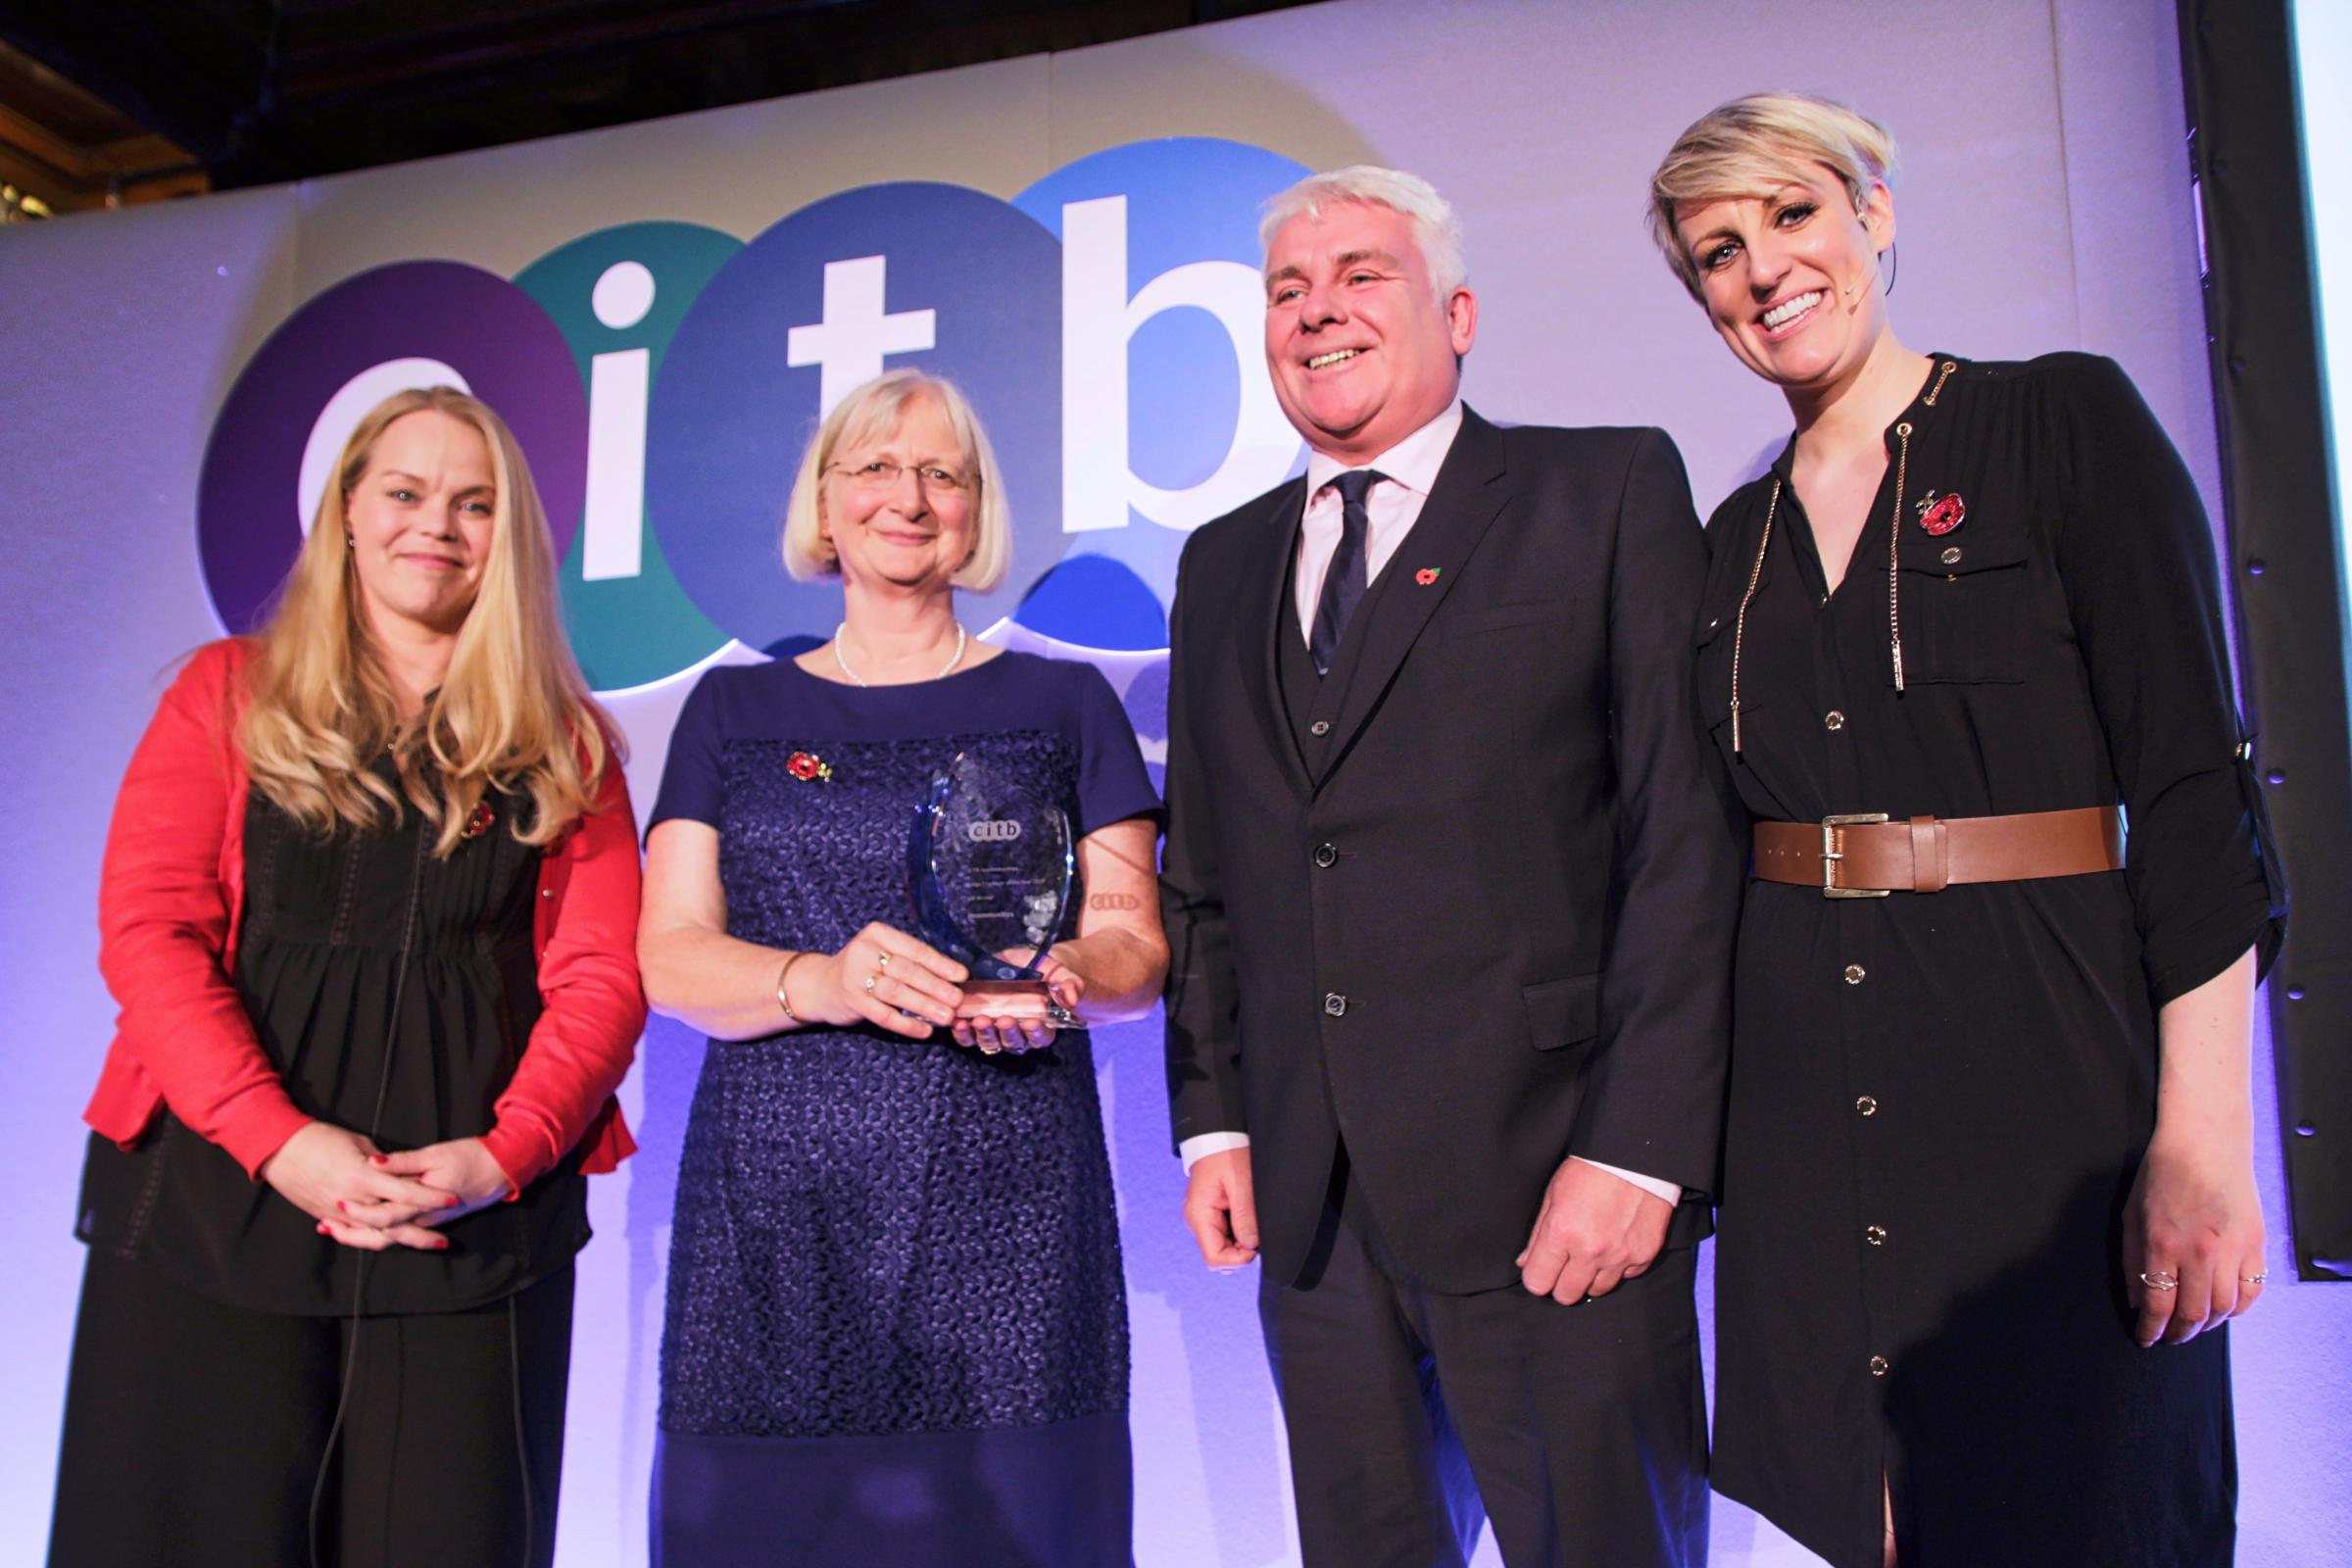 From left, the CITB's Sarah Beale, Susan Laycock and Tony Thompson from Incommunities and Steph McGovern